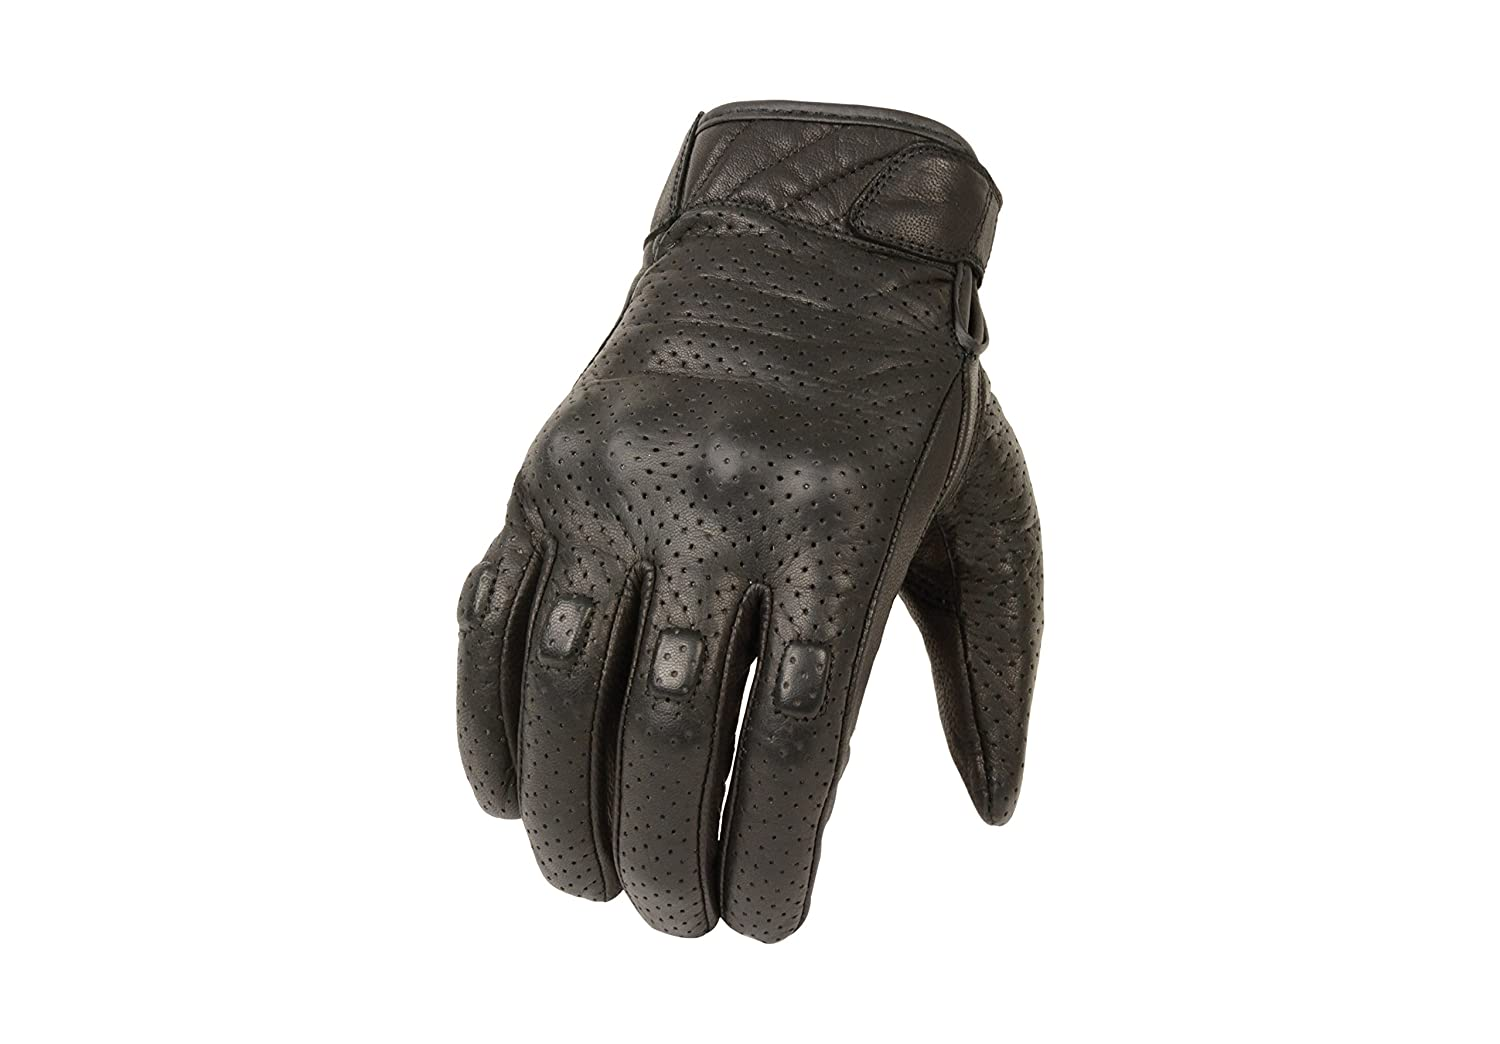 MG7500-BLK-L Milwaukee Leather Mens Short Perforated Gel Pad Racing Gloves Black, Large